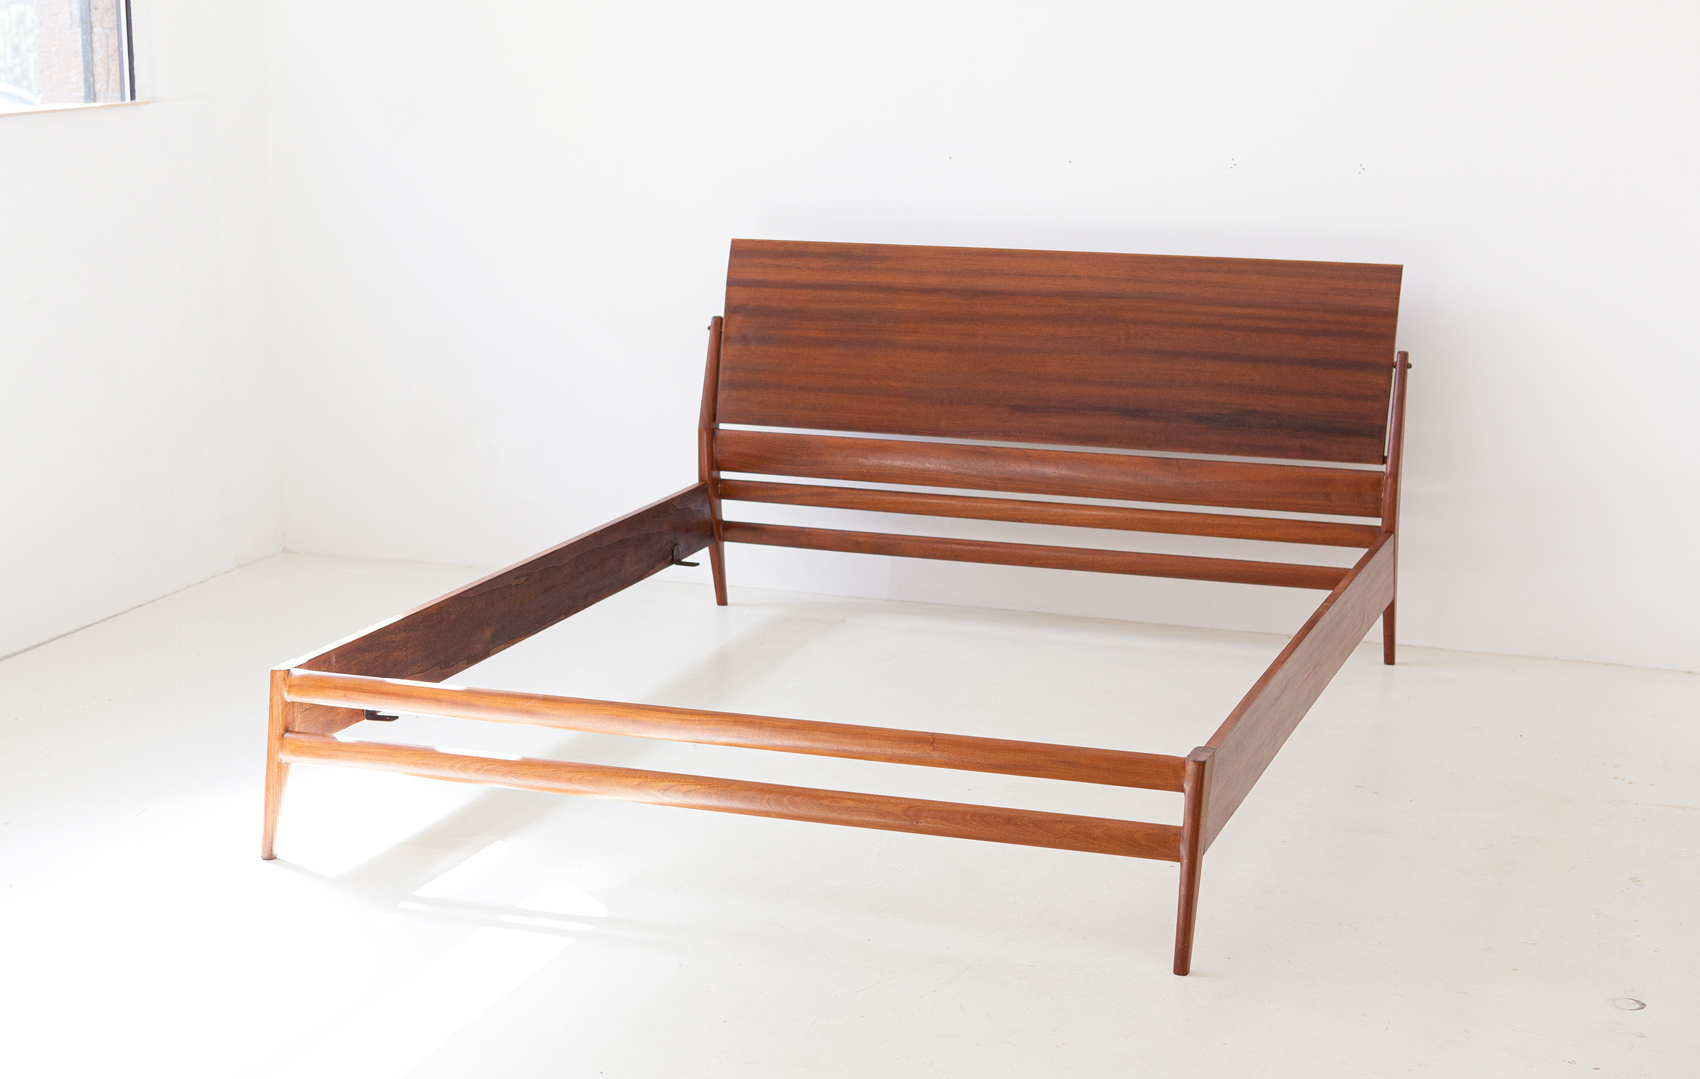 1950s-mahogany-double-bed-by-silvio-cavatorta-9-of101